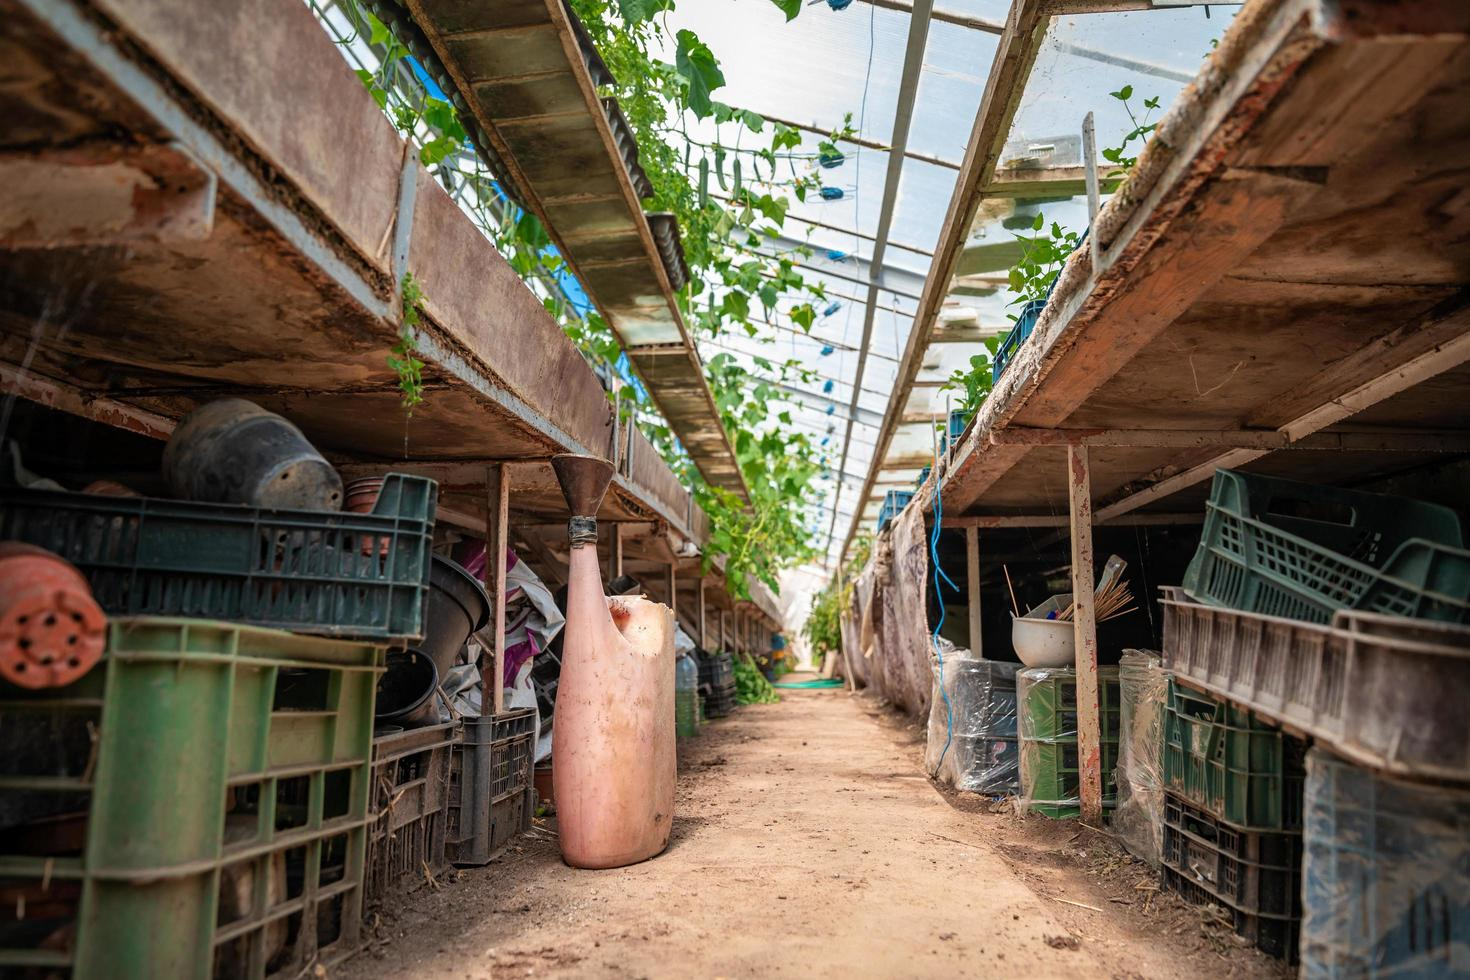 Interior view of greenhouse with tools photo